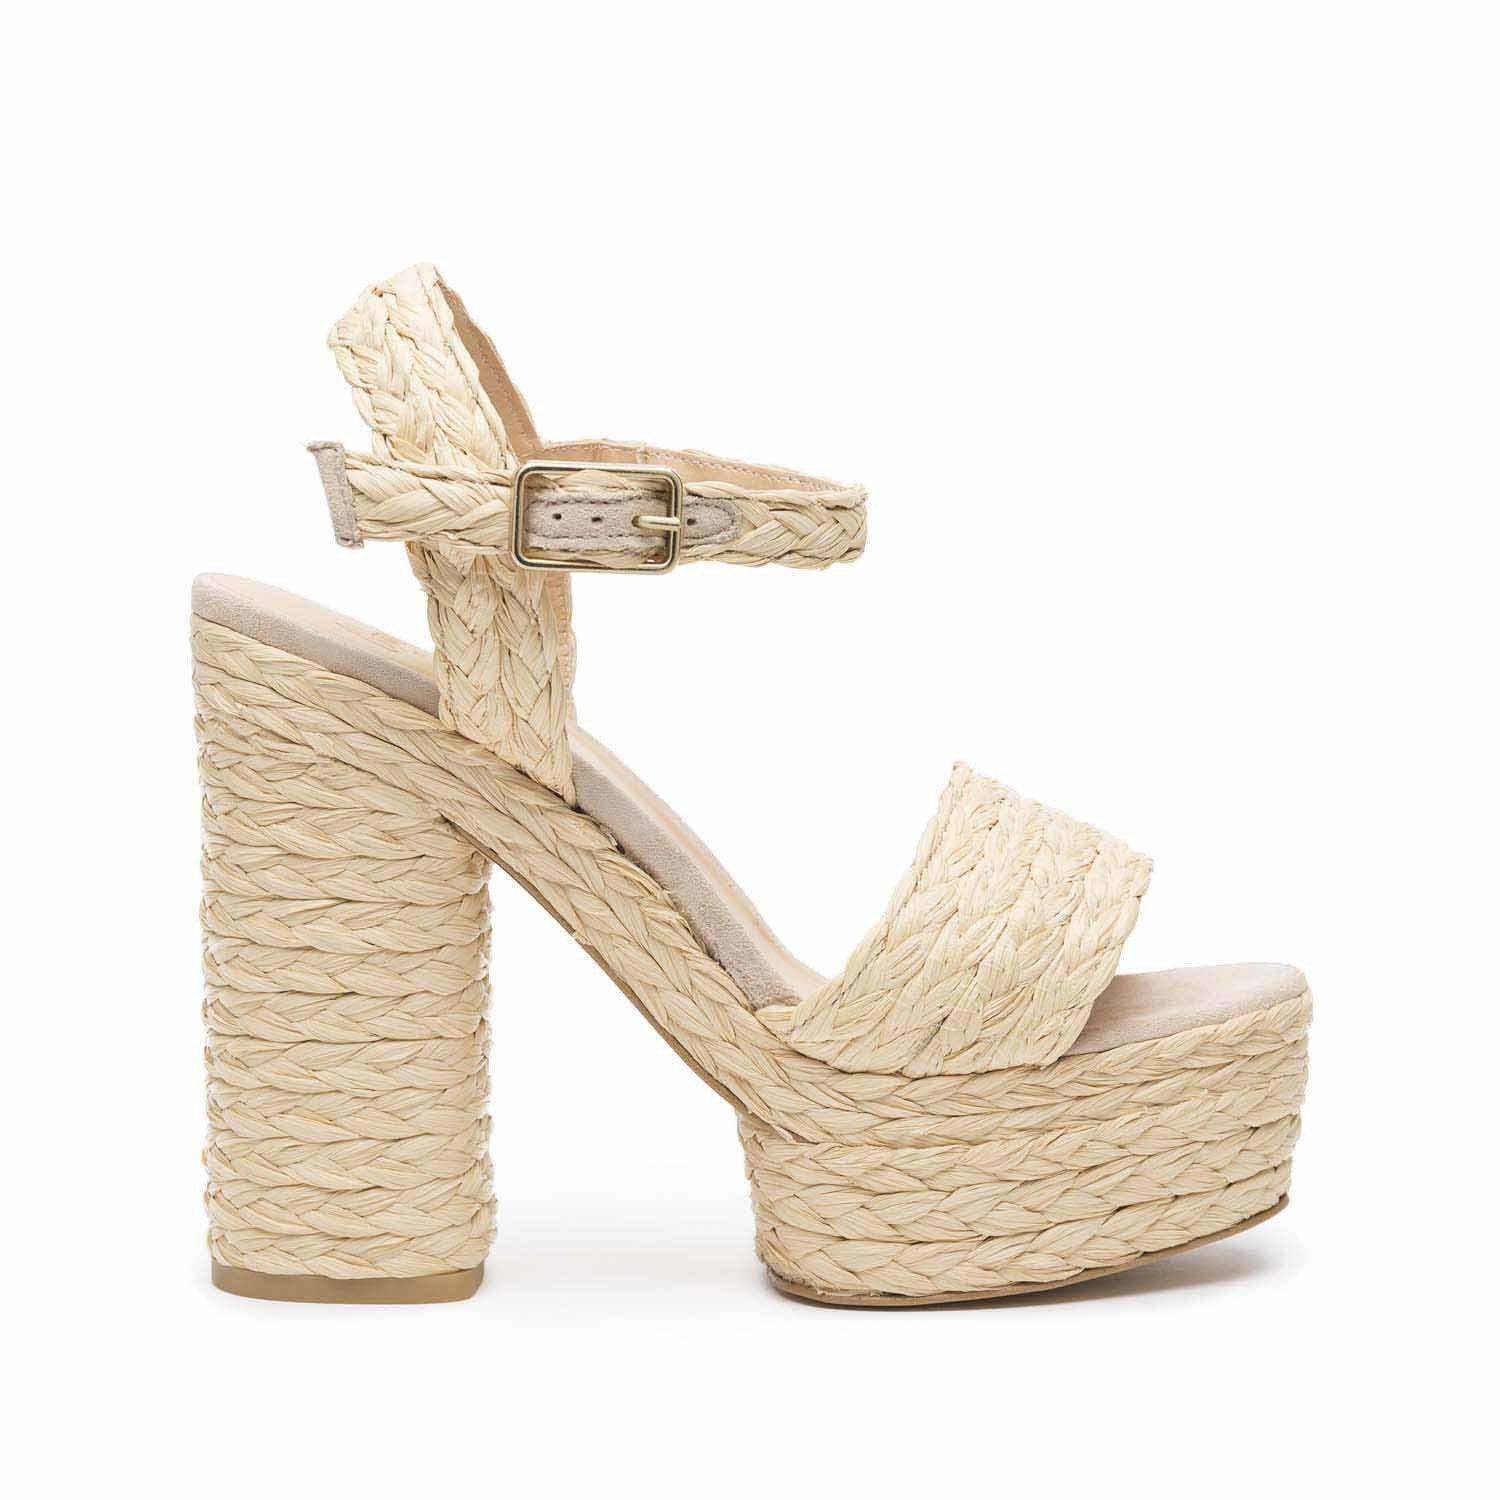 8a7a81a1422 Lyst - Castaner Abelia Sandal Natural in Natural